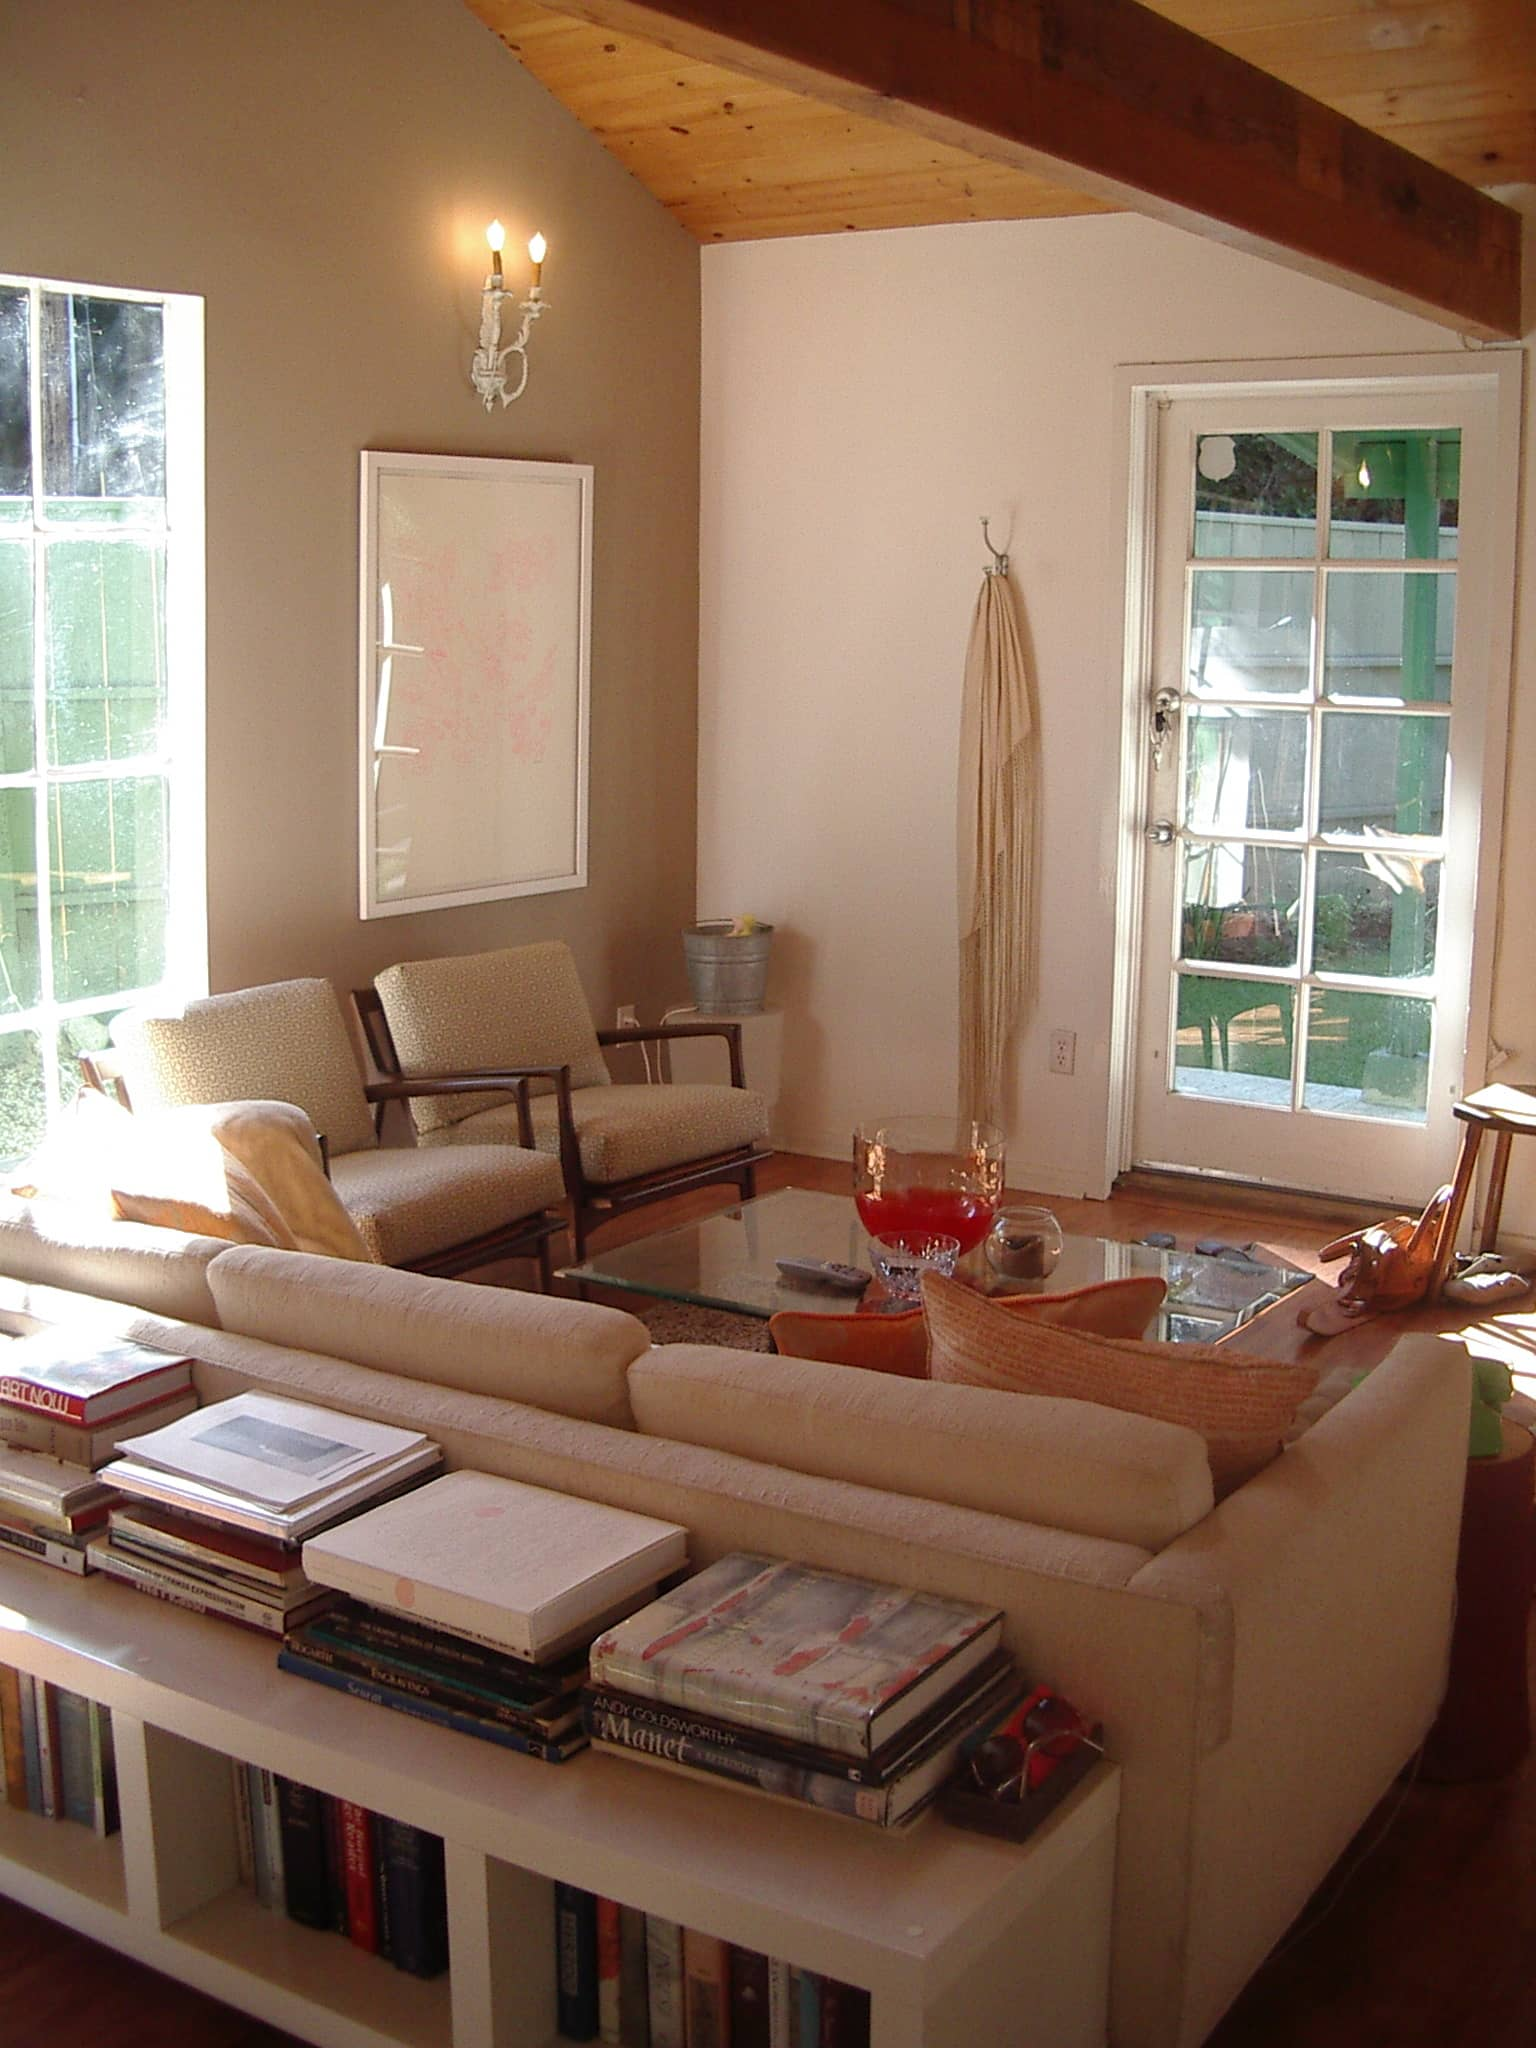 Good Questions: How To Paint This High Ceilinged Room?: gallery slide thumbnail 12